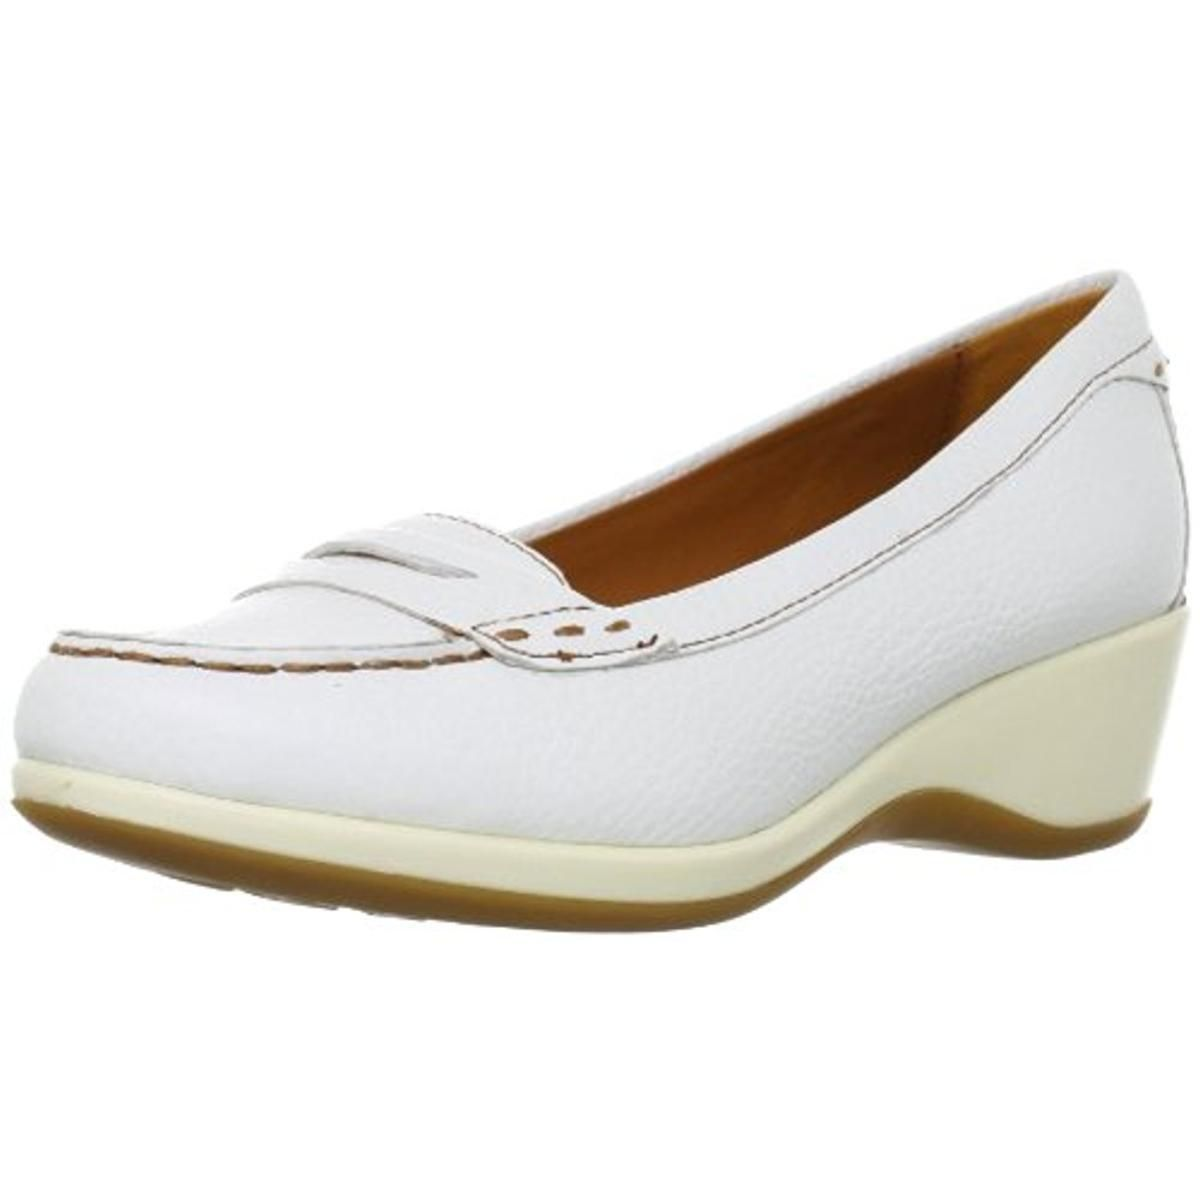 Geox 9490 Womens Tabitha Leather Contrast Trim Loafer Heels Shoes Bhfo